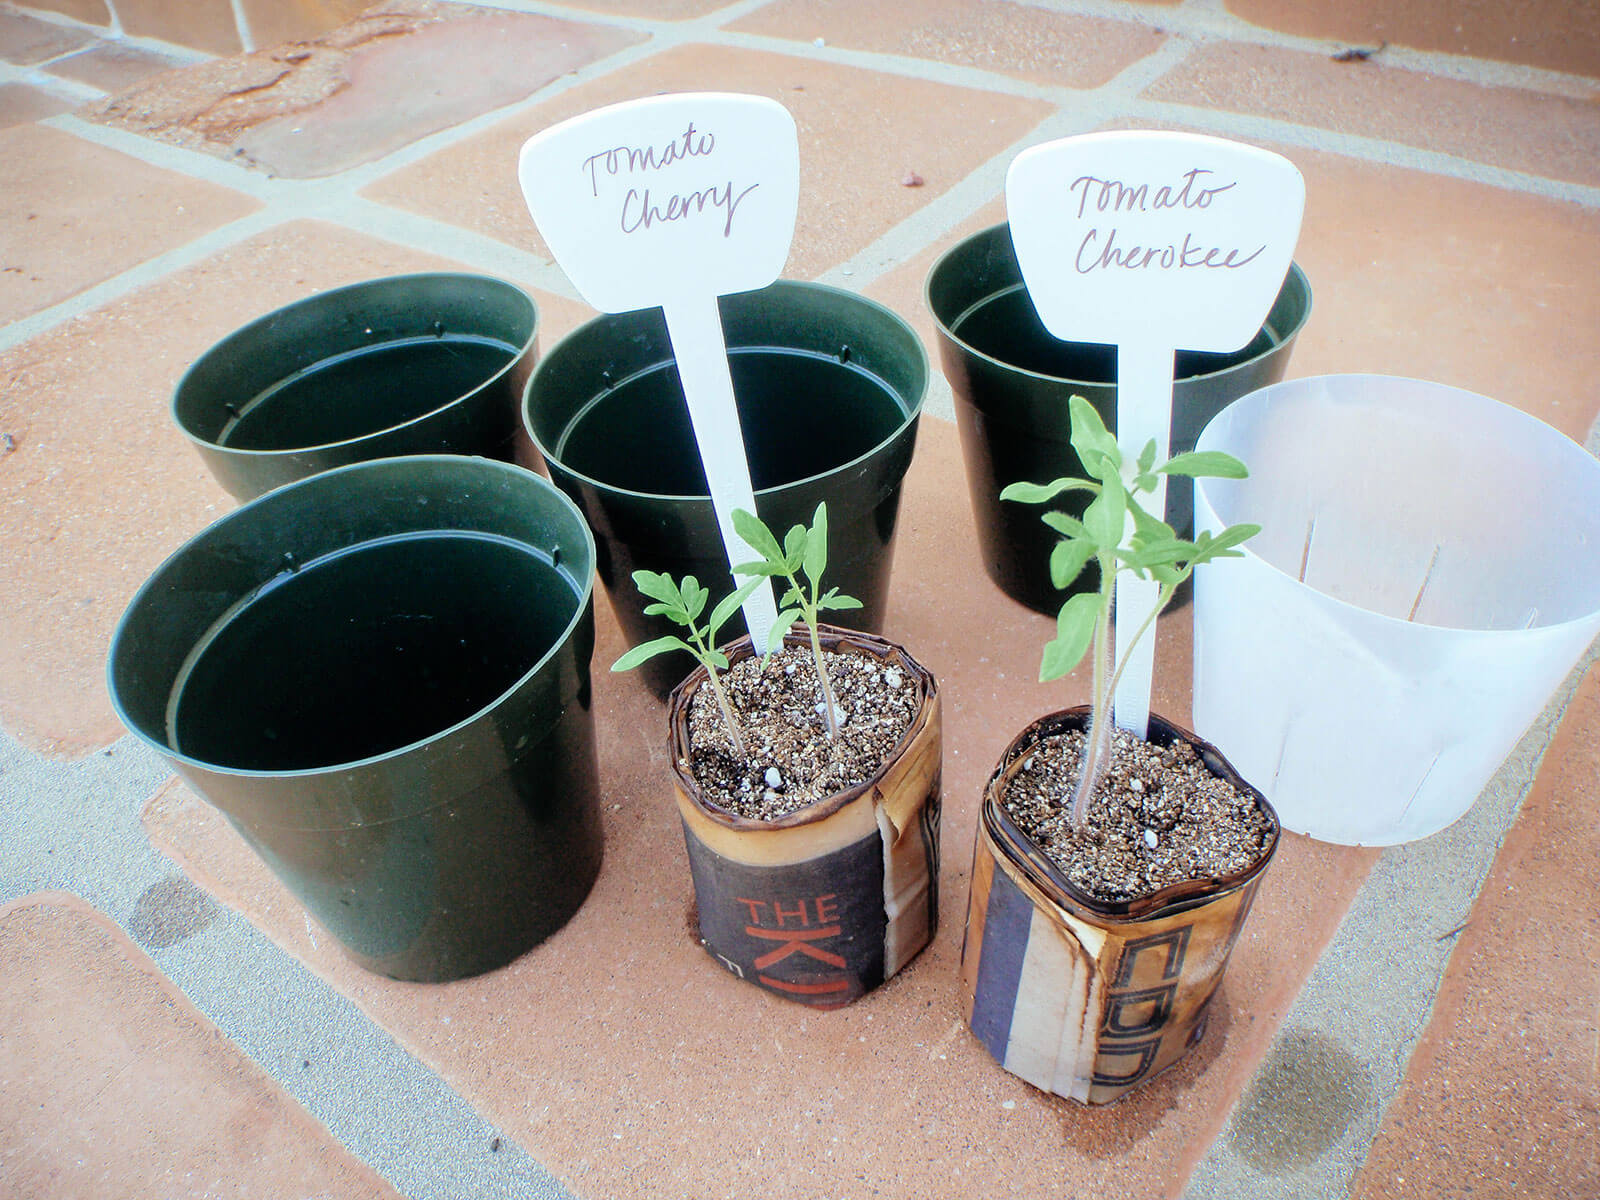 Gather clean 4-inch pots and high-quality potting soil to repot tomato seedlings